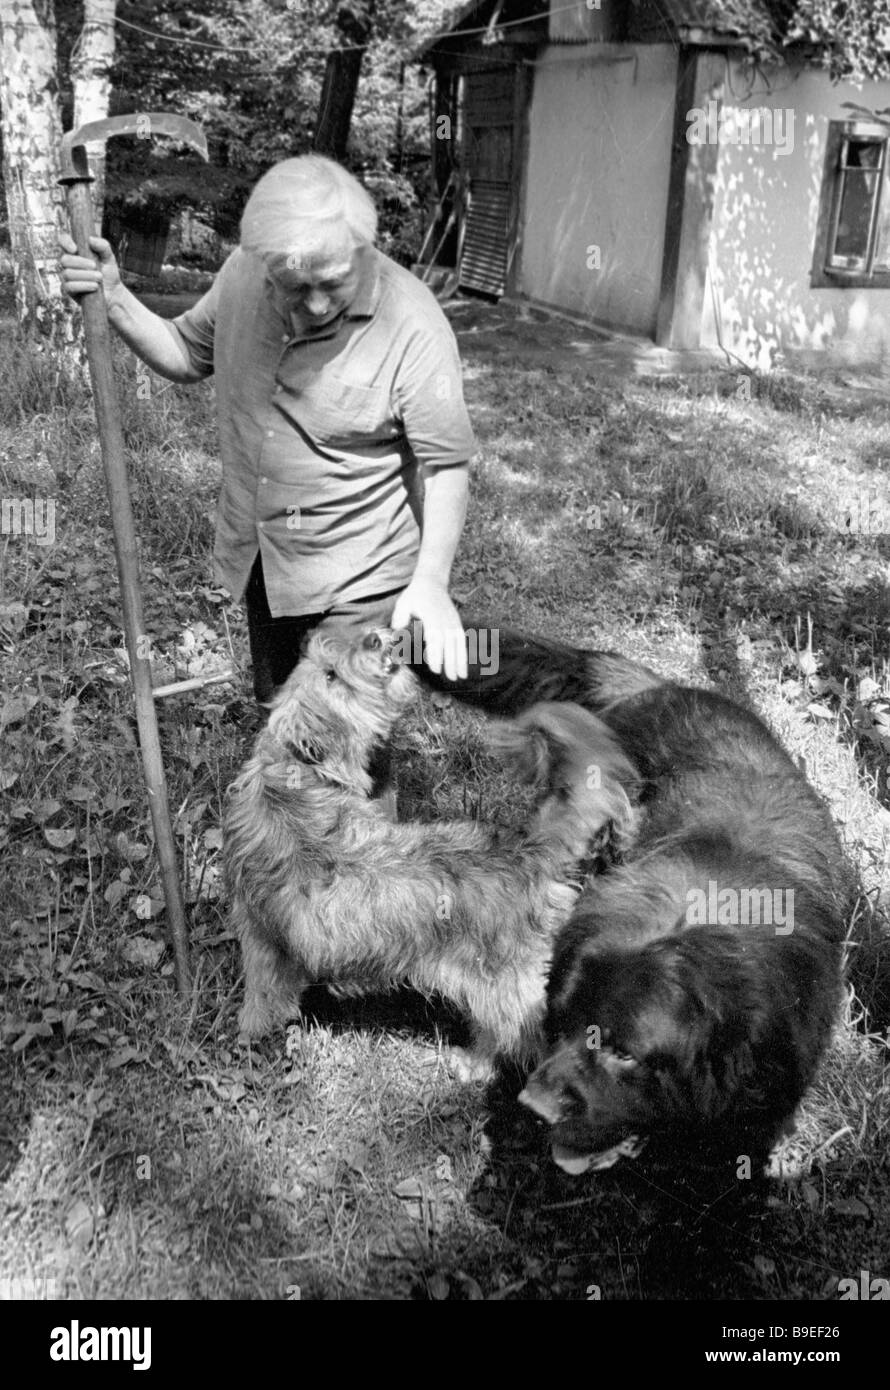 USSR People s Artist Sergei Obraztsov with his pets - Stock Image